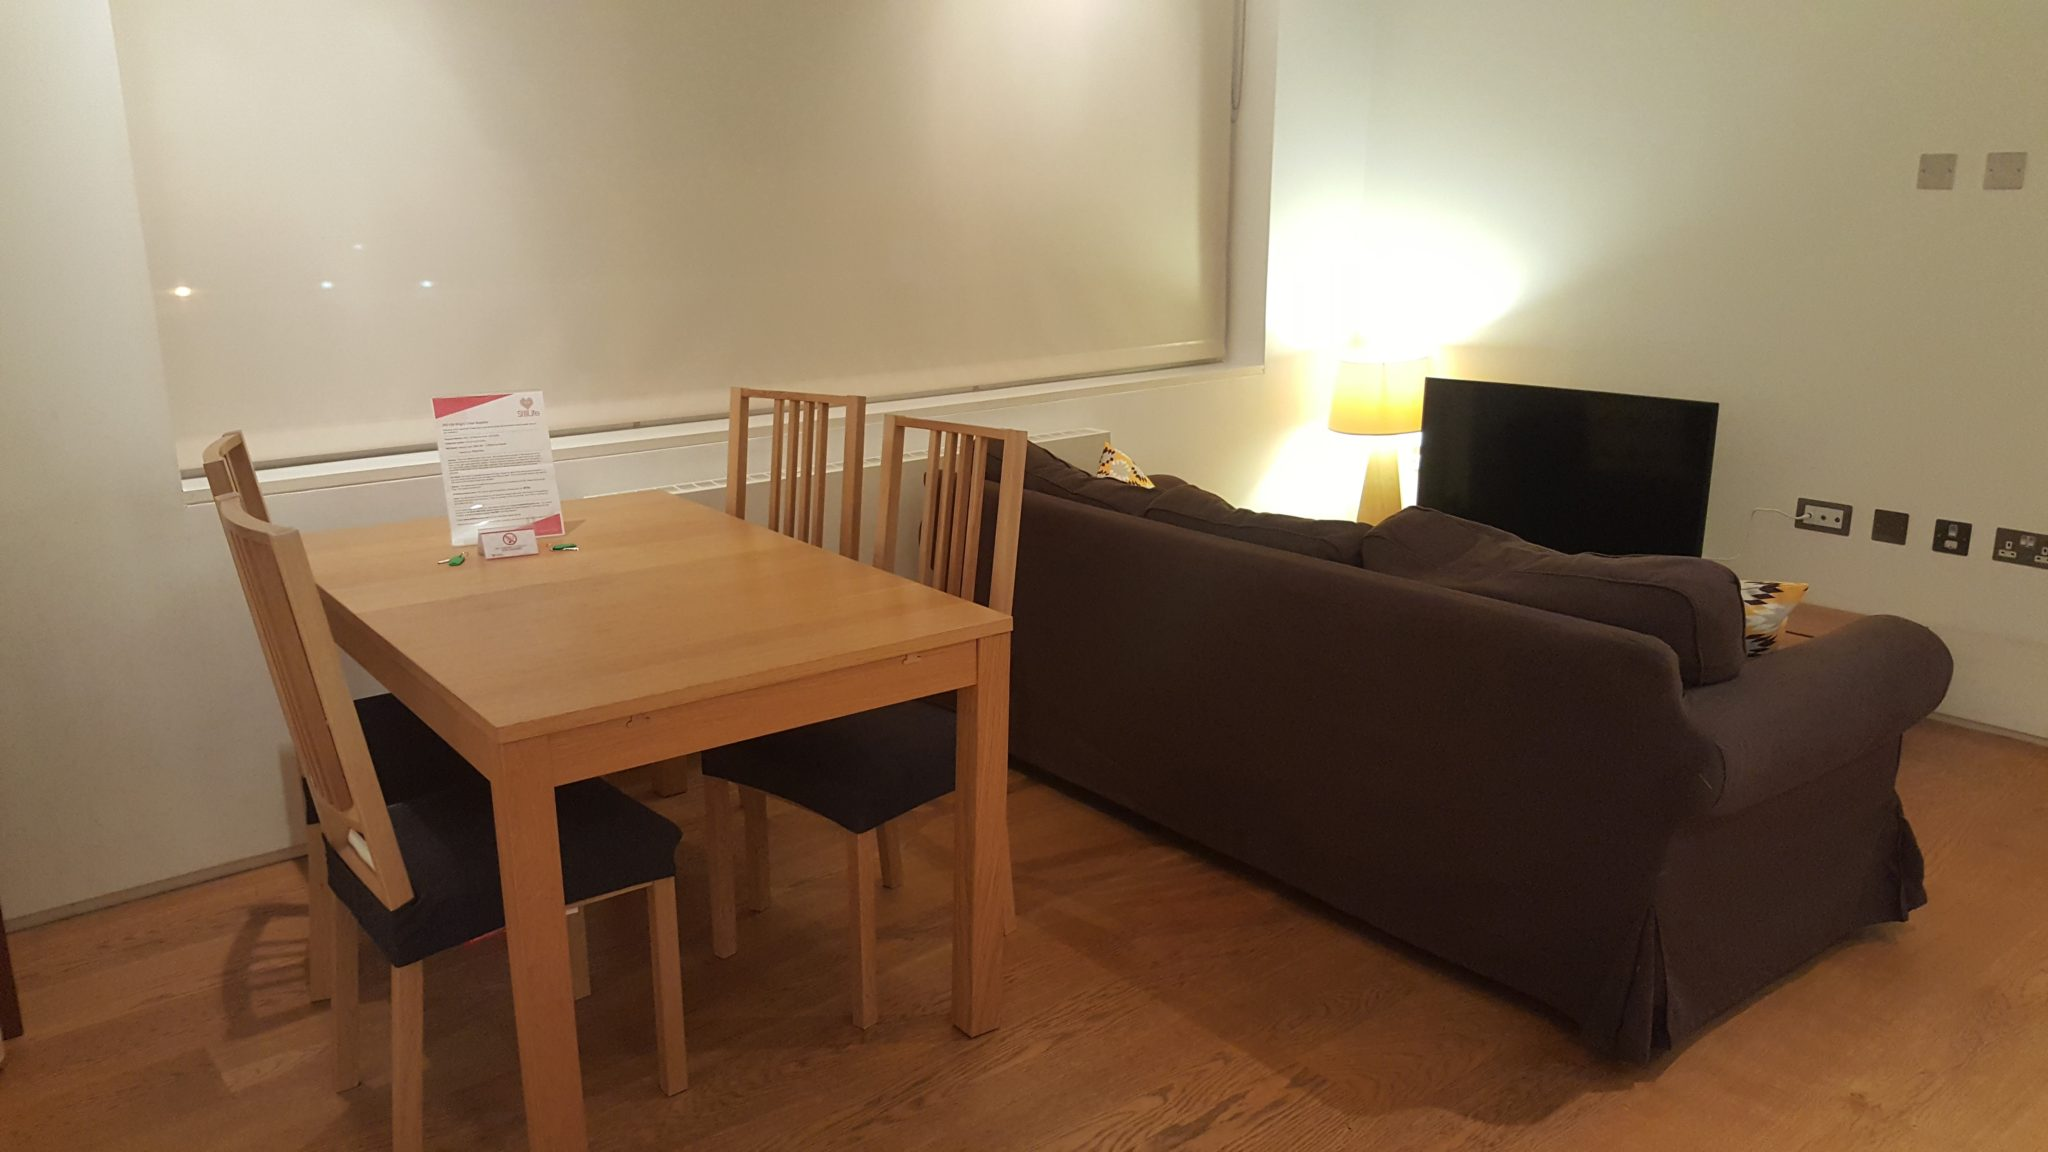 King's-Cross-Serviced-Accommodation-London---Book-Corporate-Short-Let-Accommodation-London-near-Euston-and-King's-Cross-now.-Free-Wifi---No-Booking-Fees!-Urban-Stay